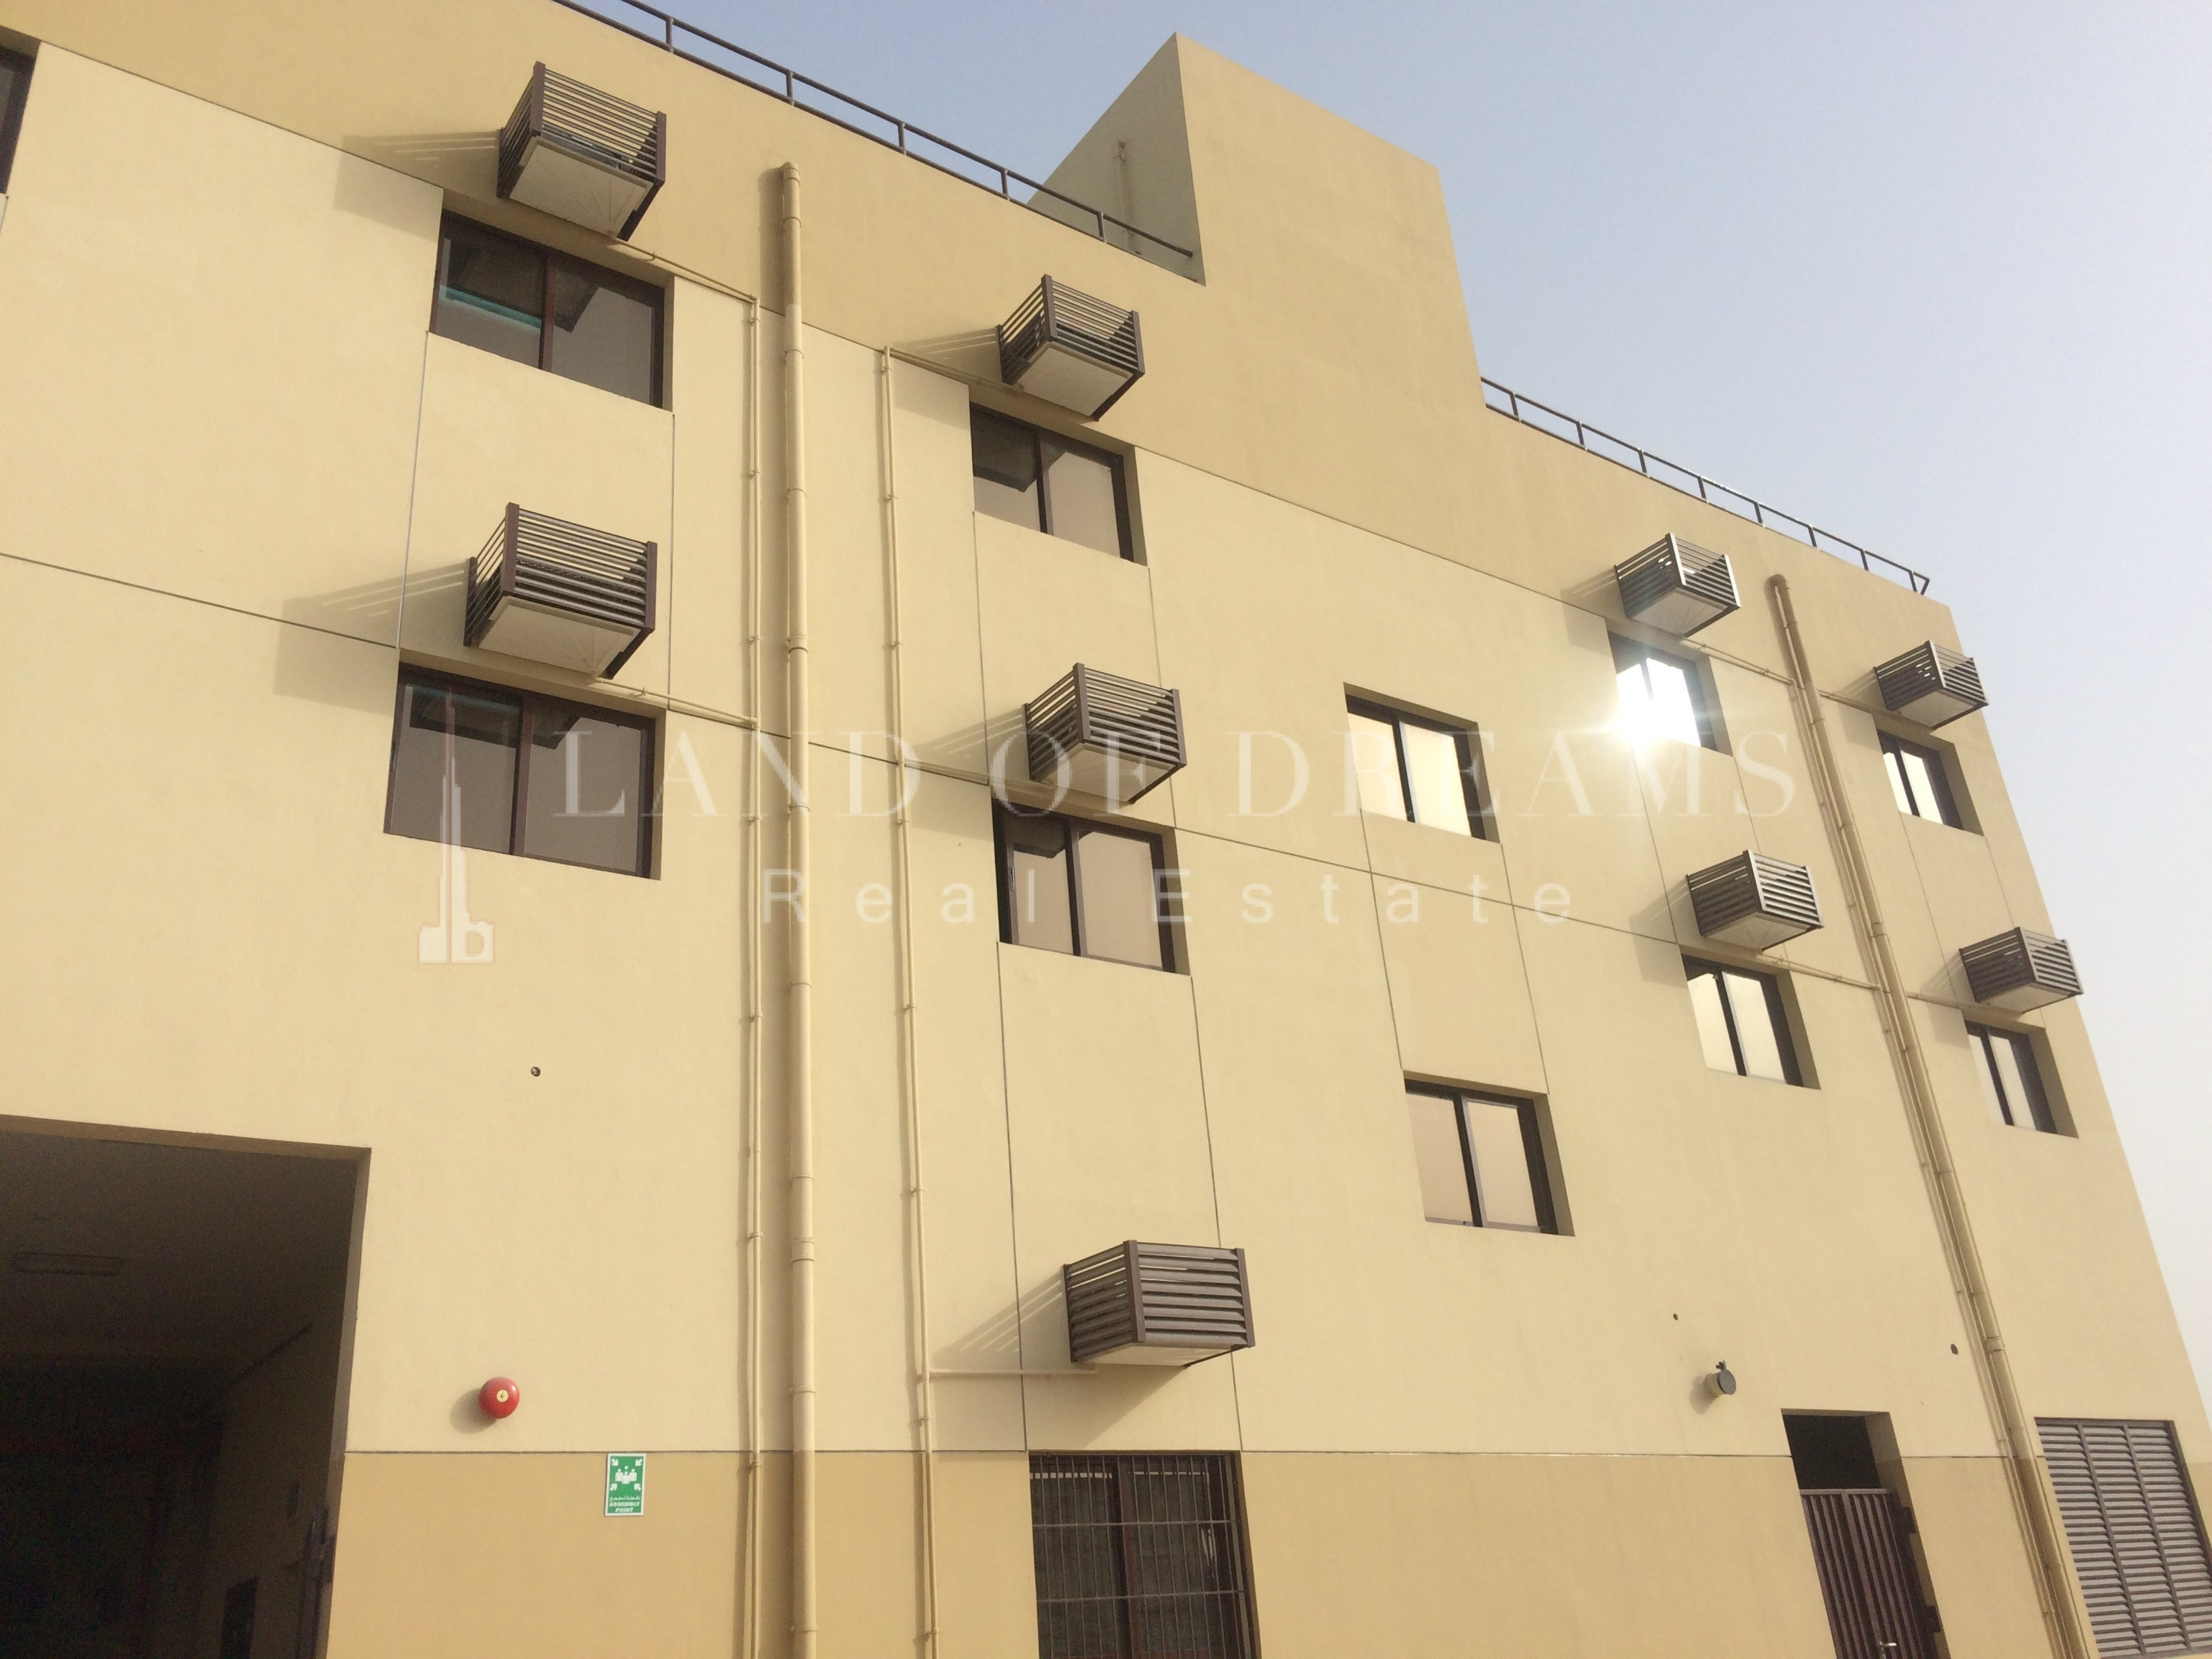 aed-3200-per-room-215-rooms-926-person